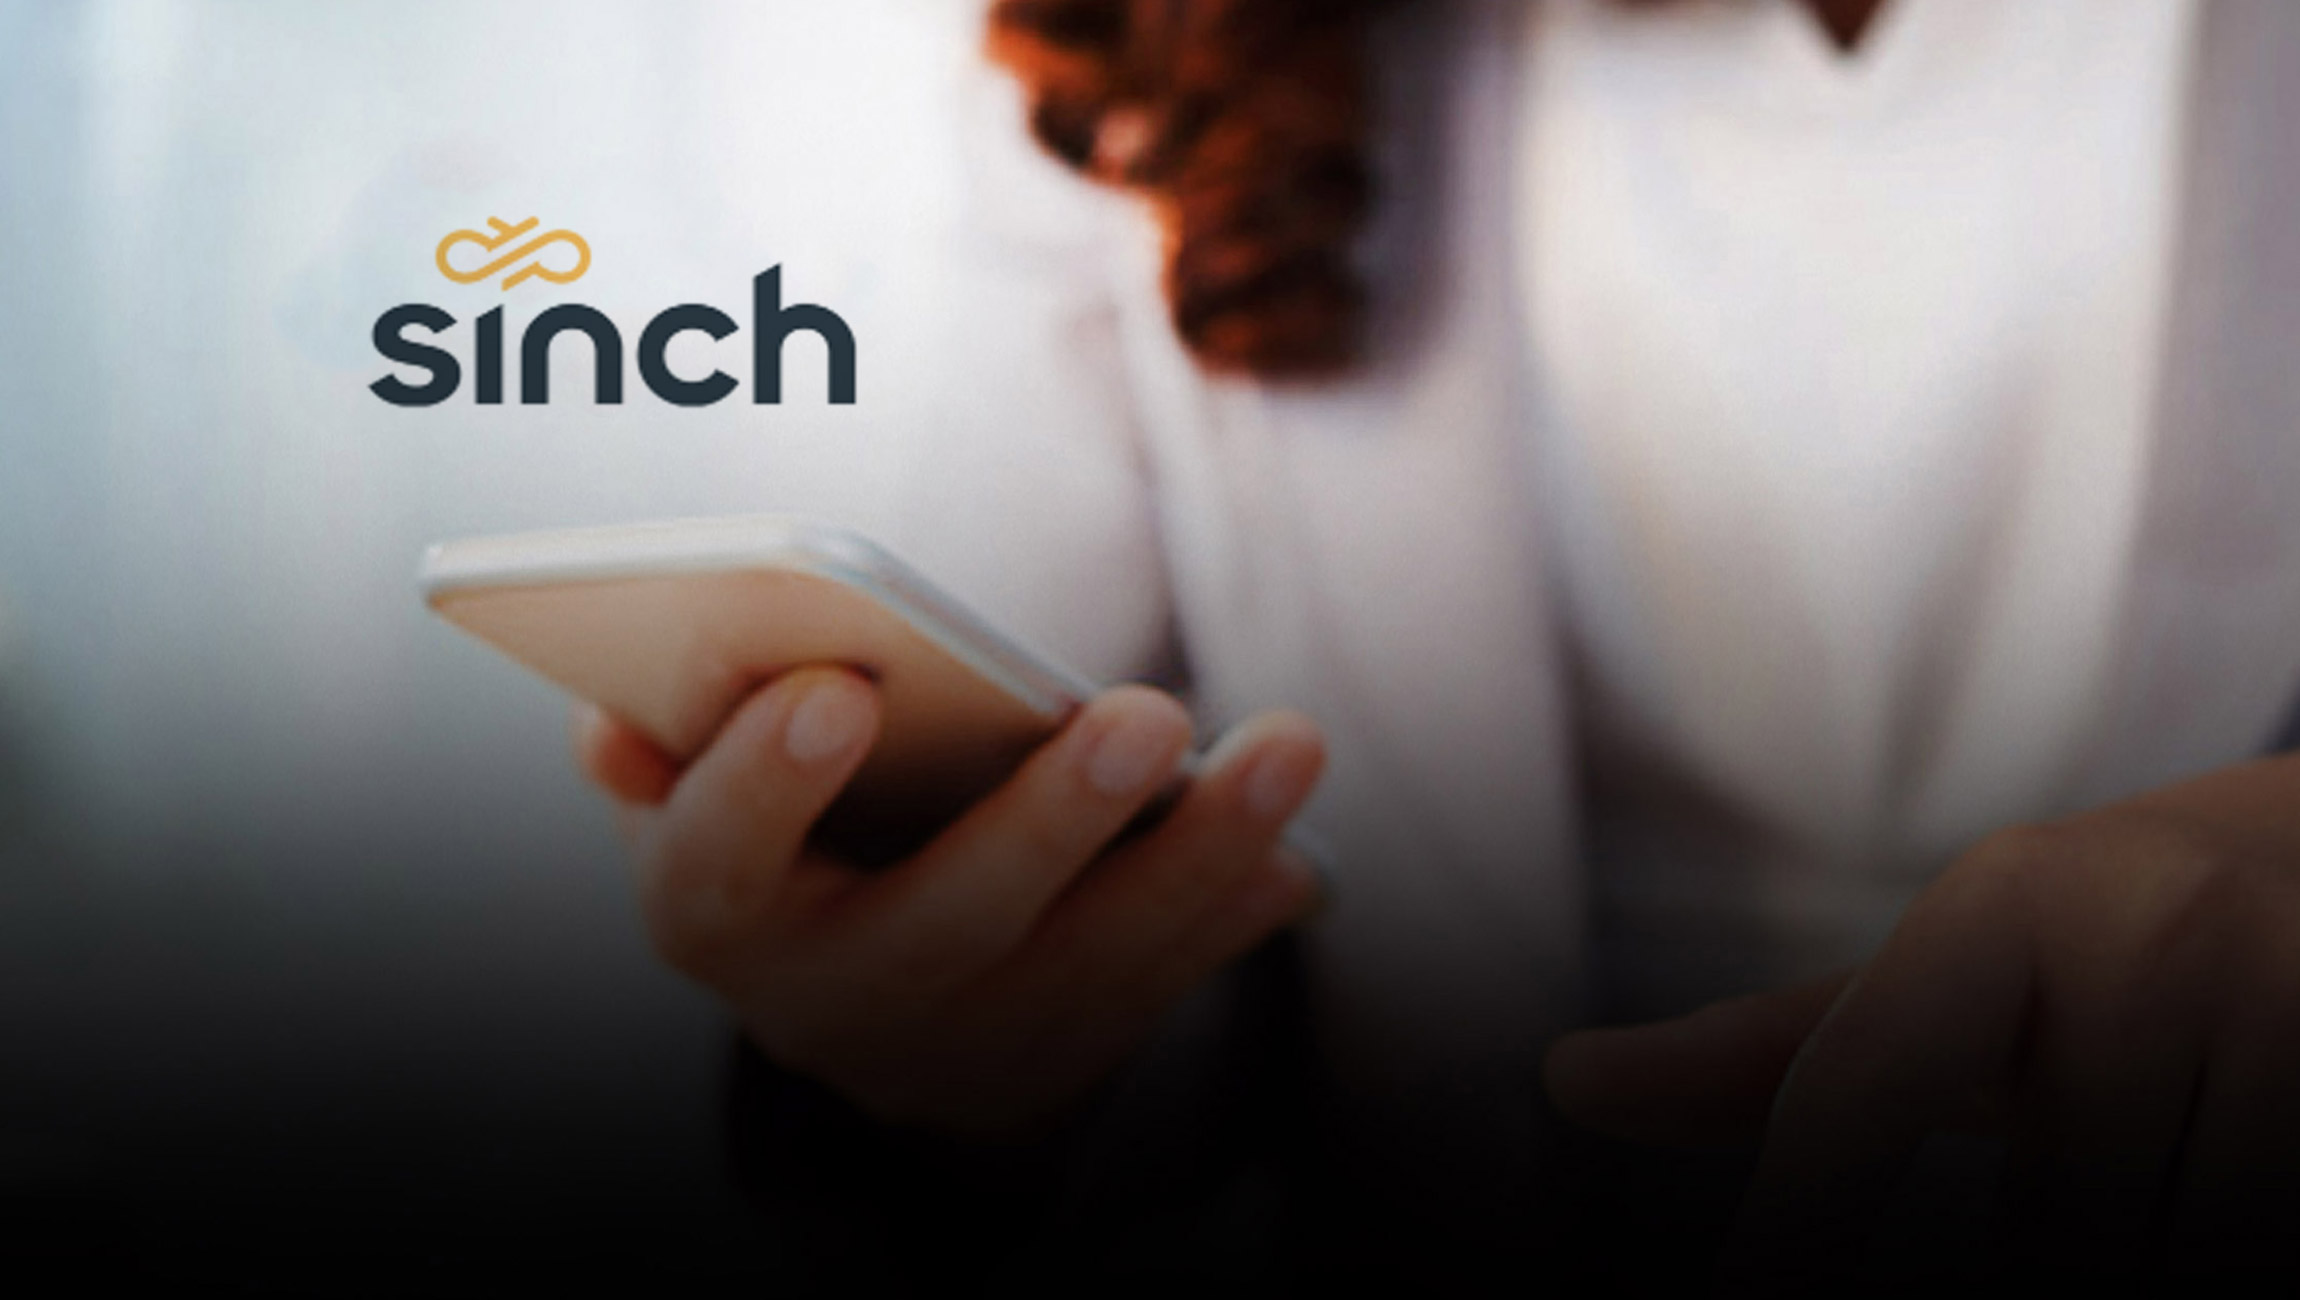 Sinch Launches New Solutions For Brands On WhatsApp